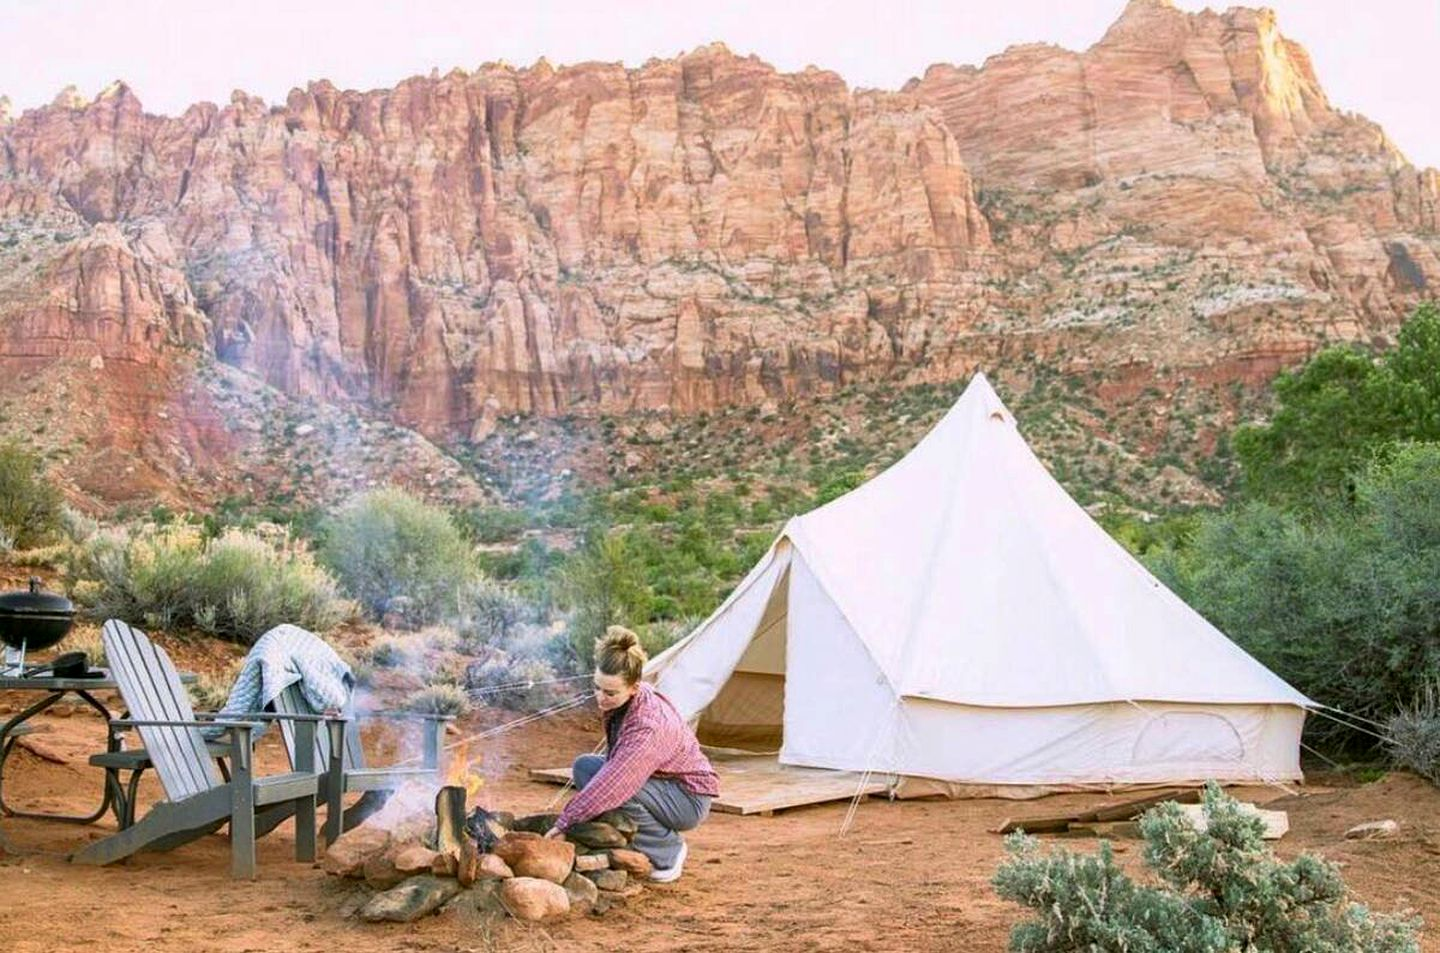 Bell tent rental for glamping in Arizona